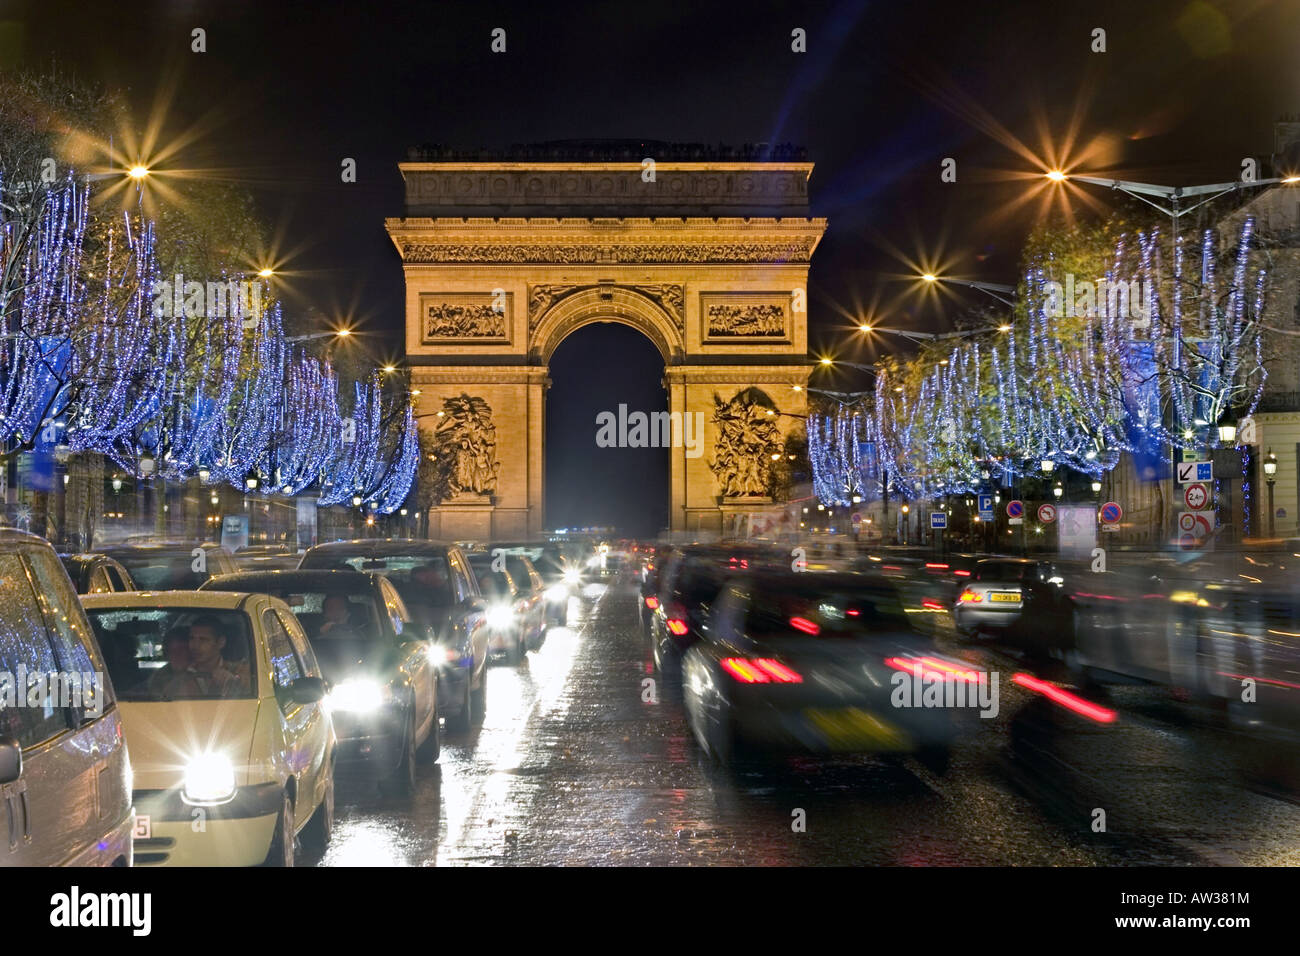 Christmas Day In France.Champs Elysee With Christmas Decoration View On The Arc De